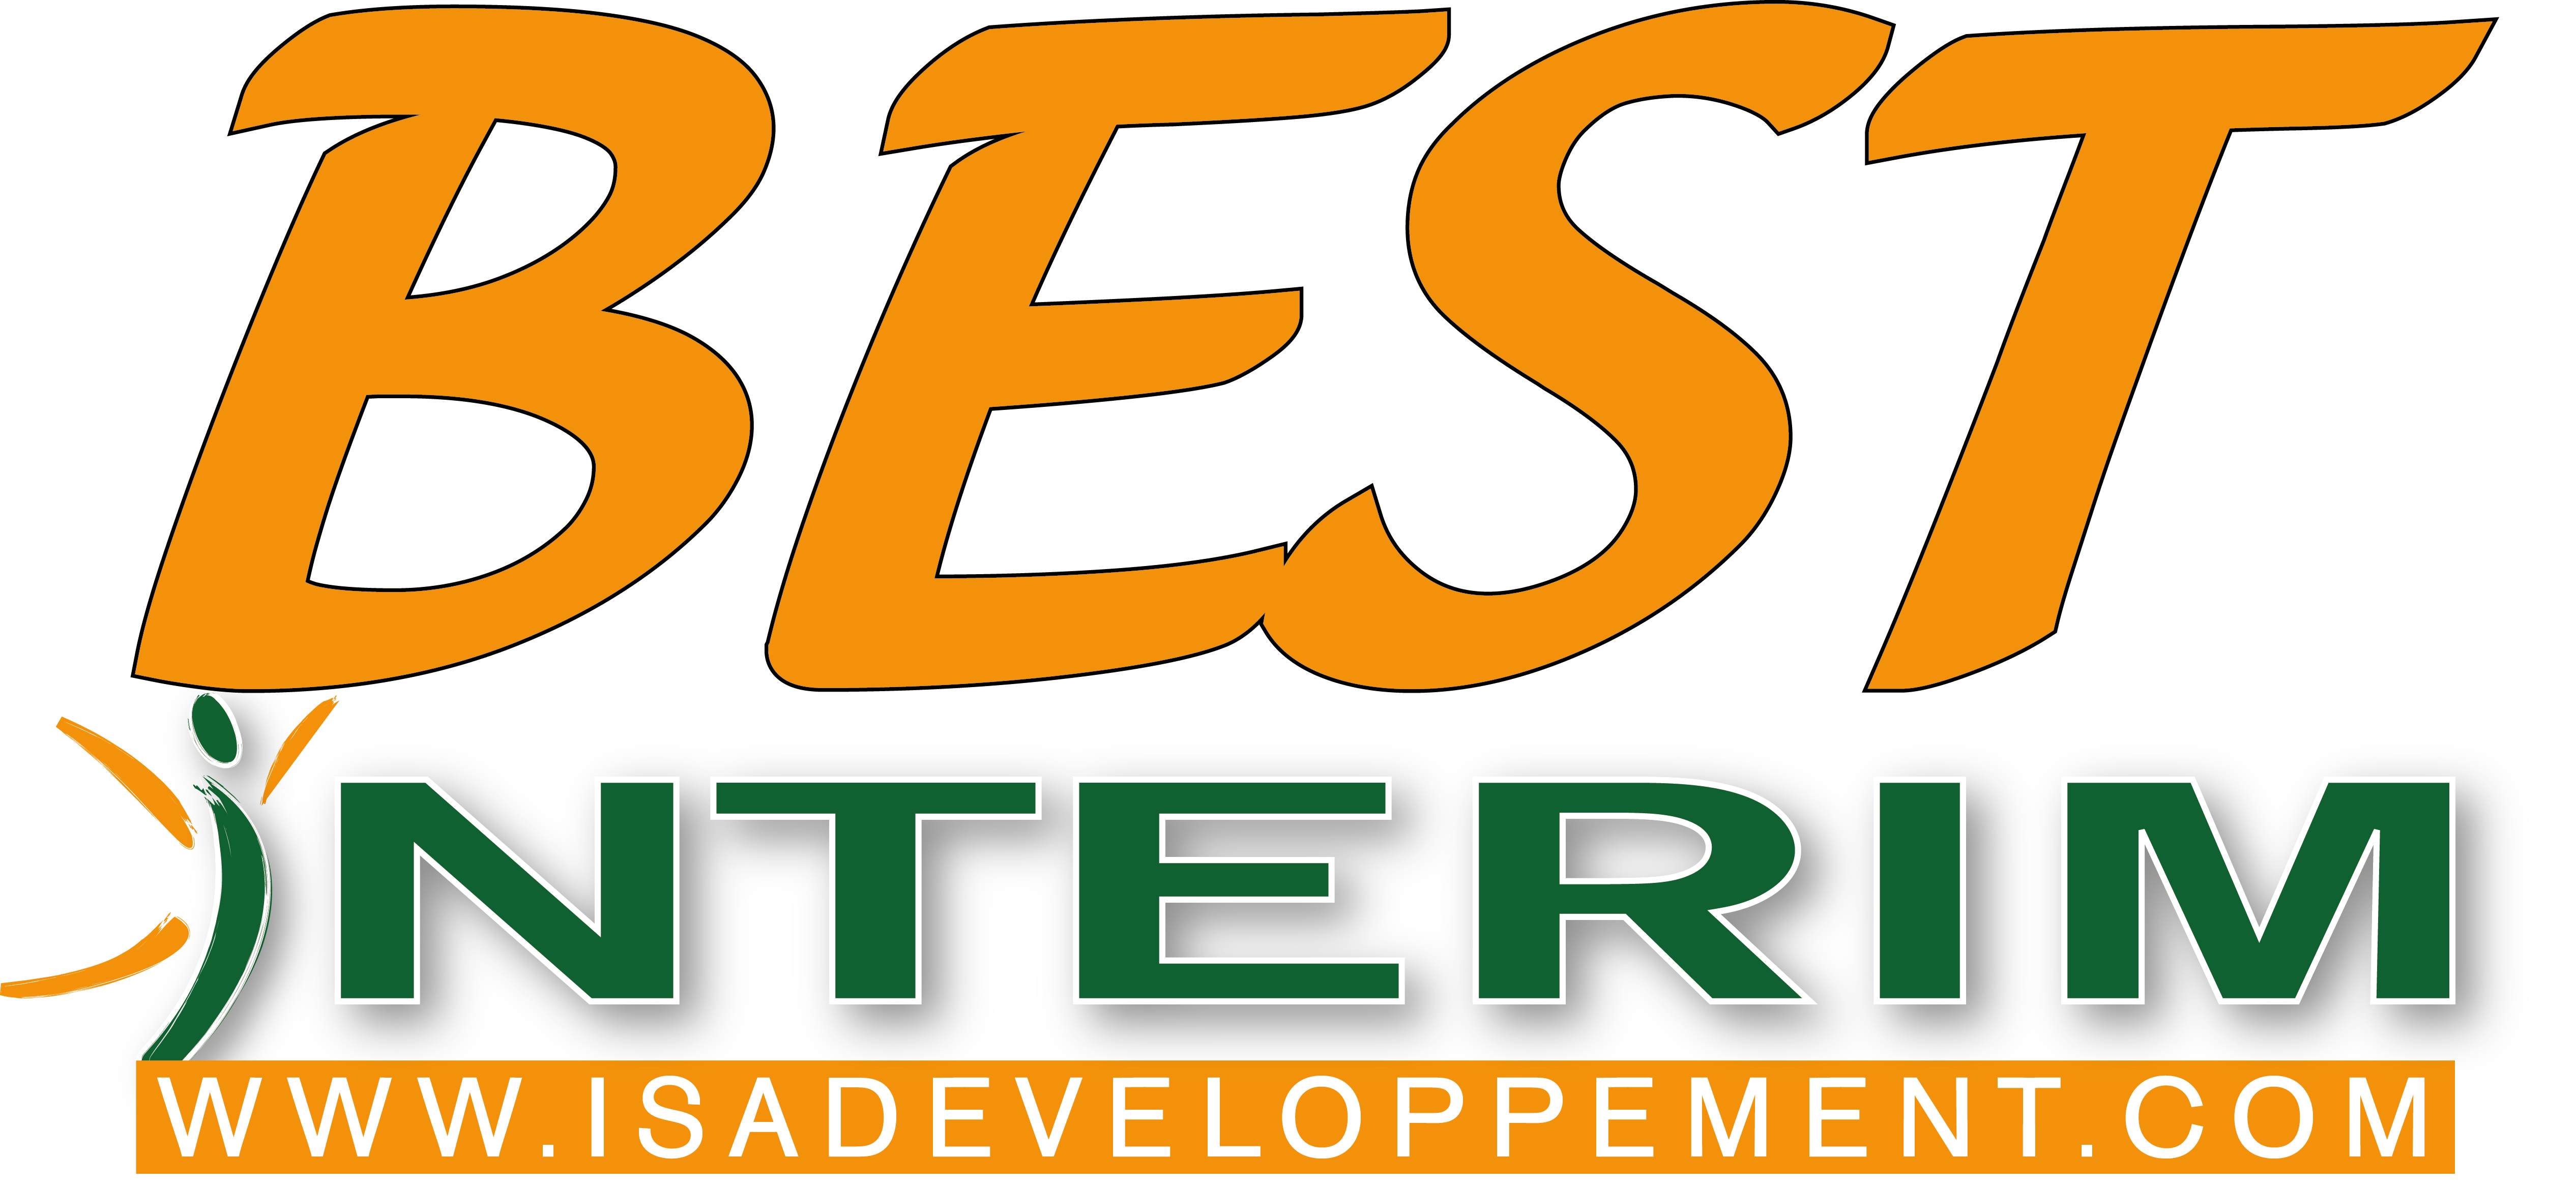 best-interim-isa-developpement